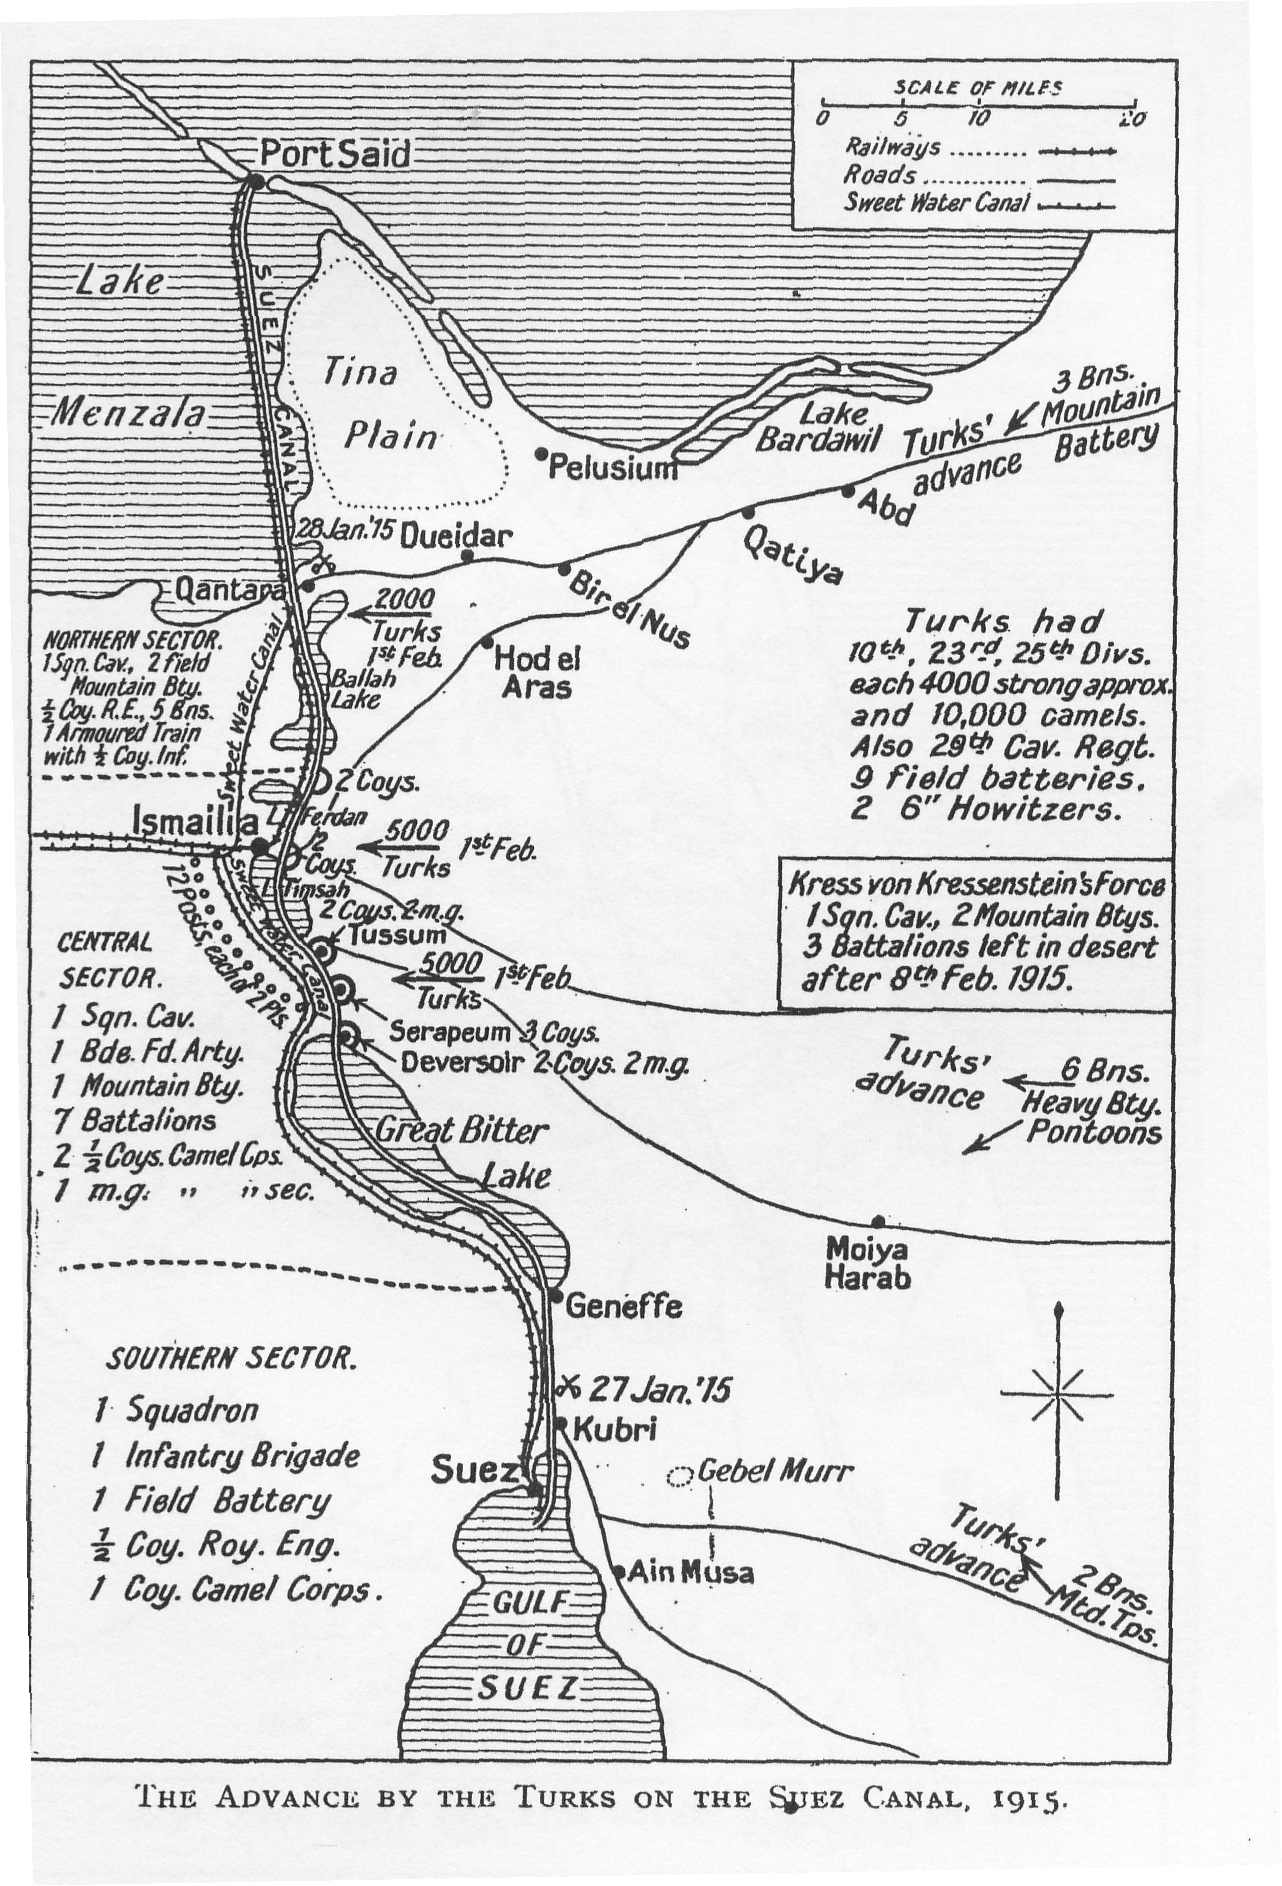 summary of the strategy and tactics of the egyptian and palestine Simple Theatre Resume wwi map the advance by the turks on the suez canal 1915